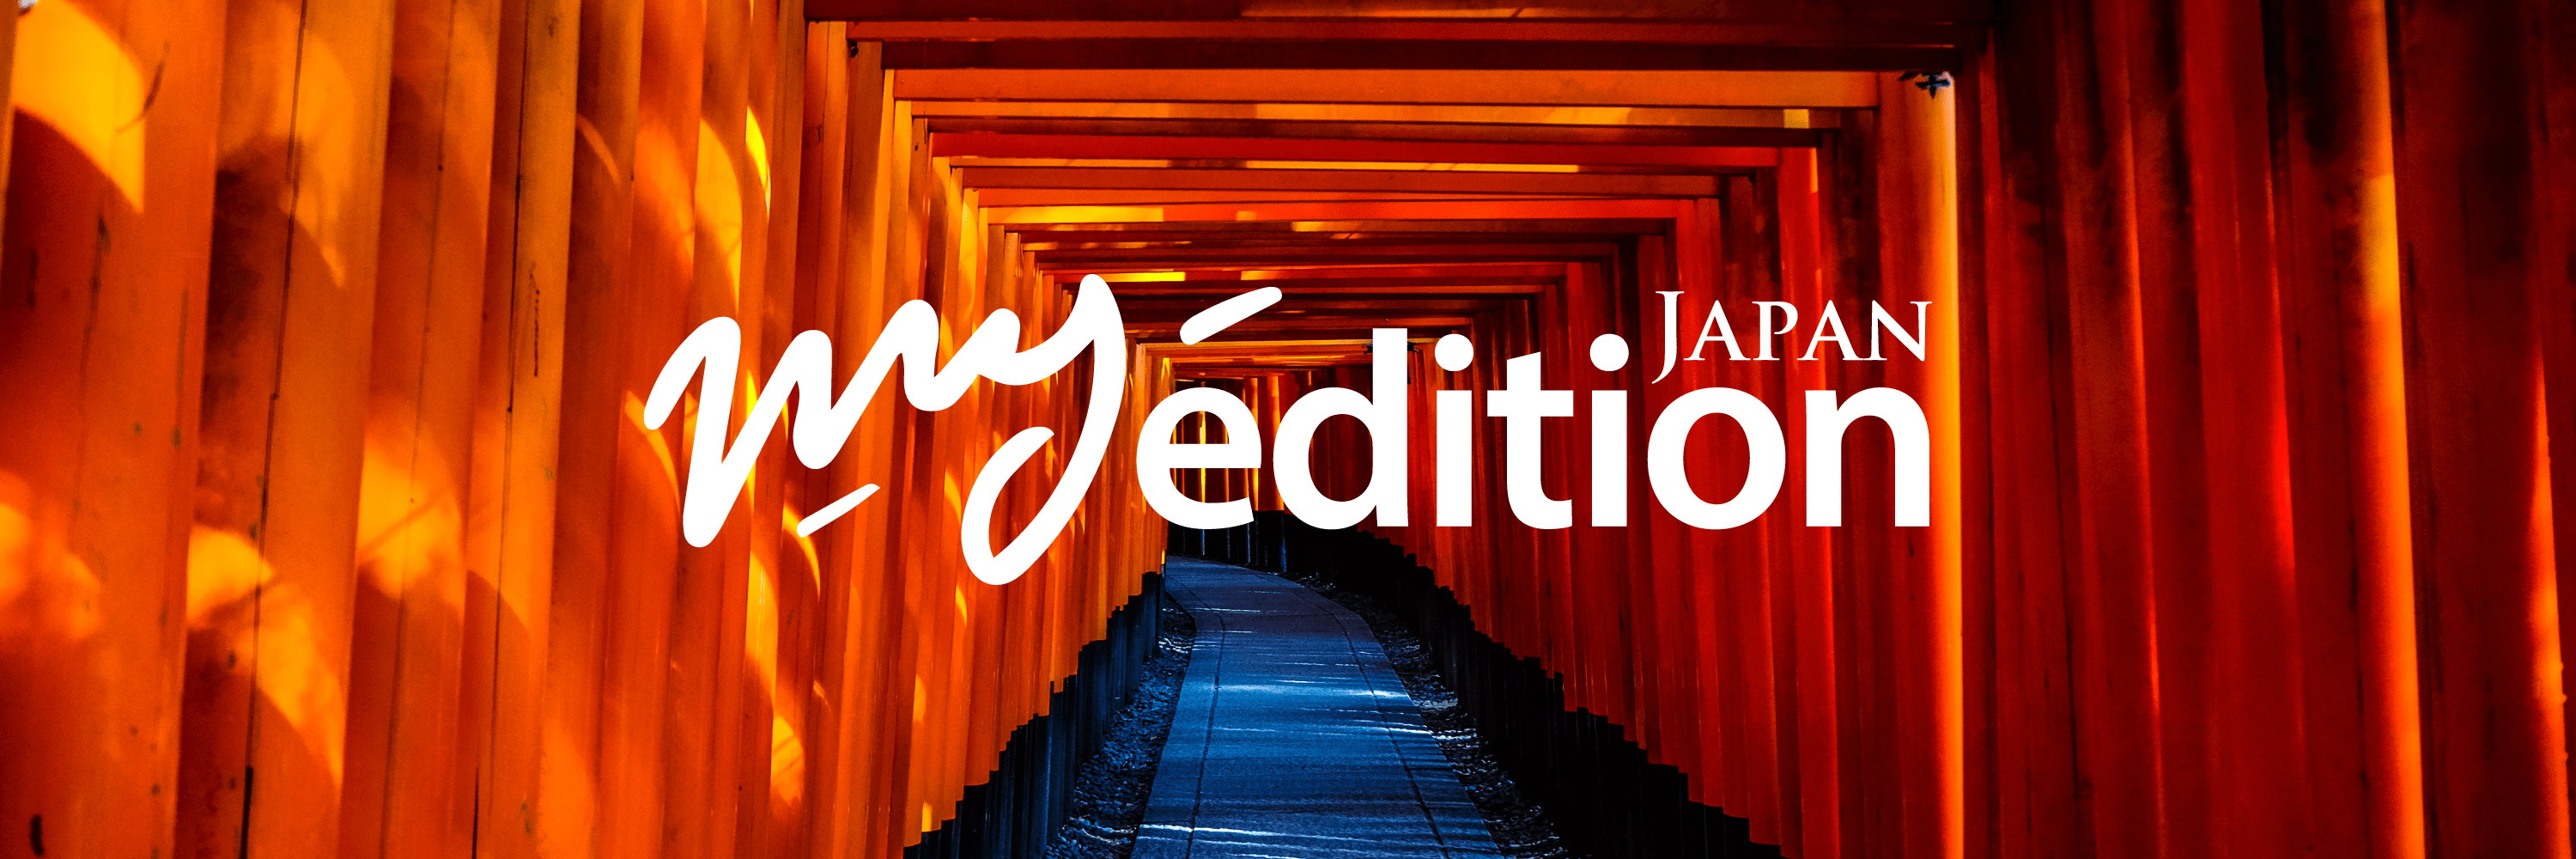 MyEdition JAPAN Orange gates at Fushimiinaritaisha in Kyoto